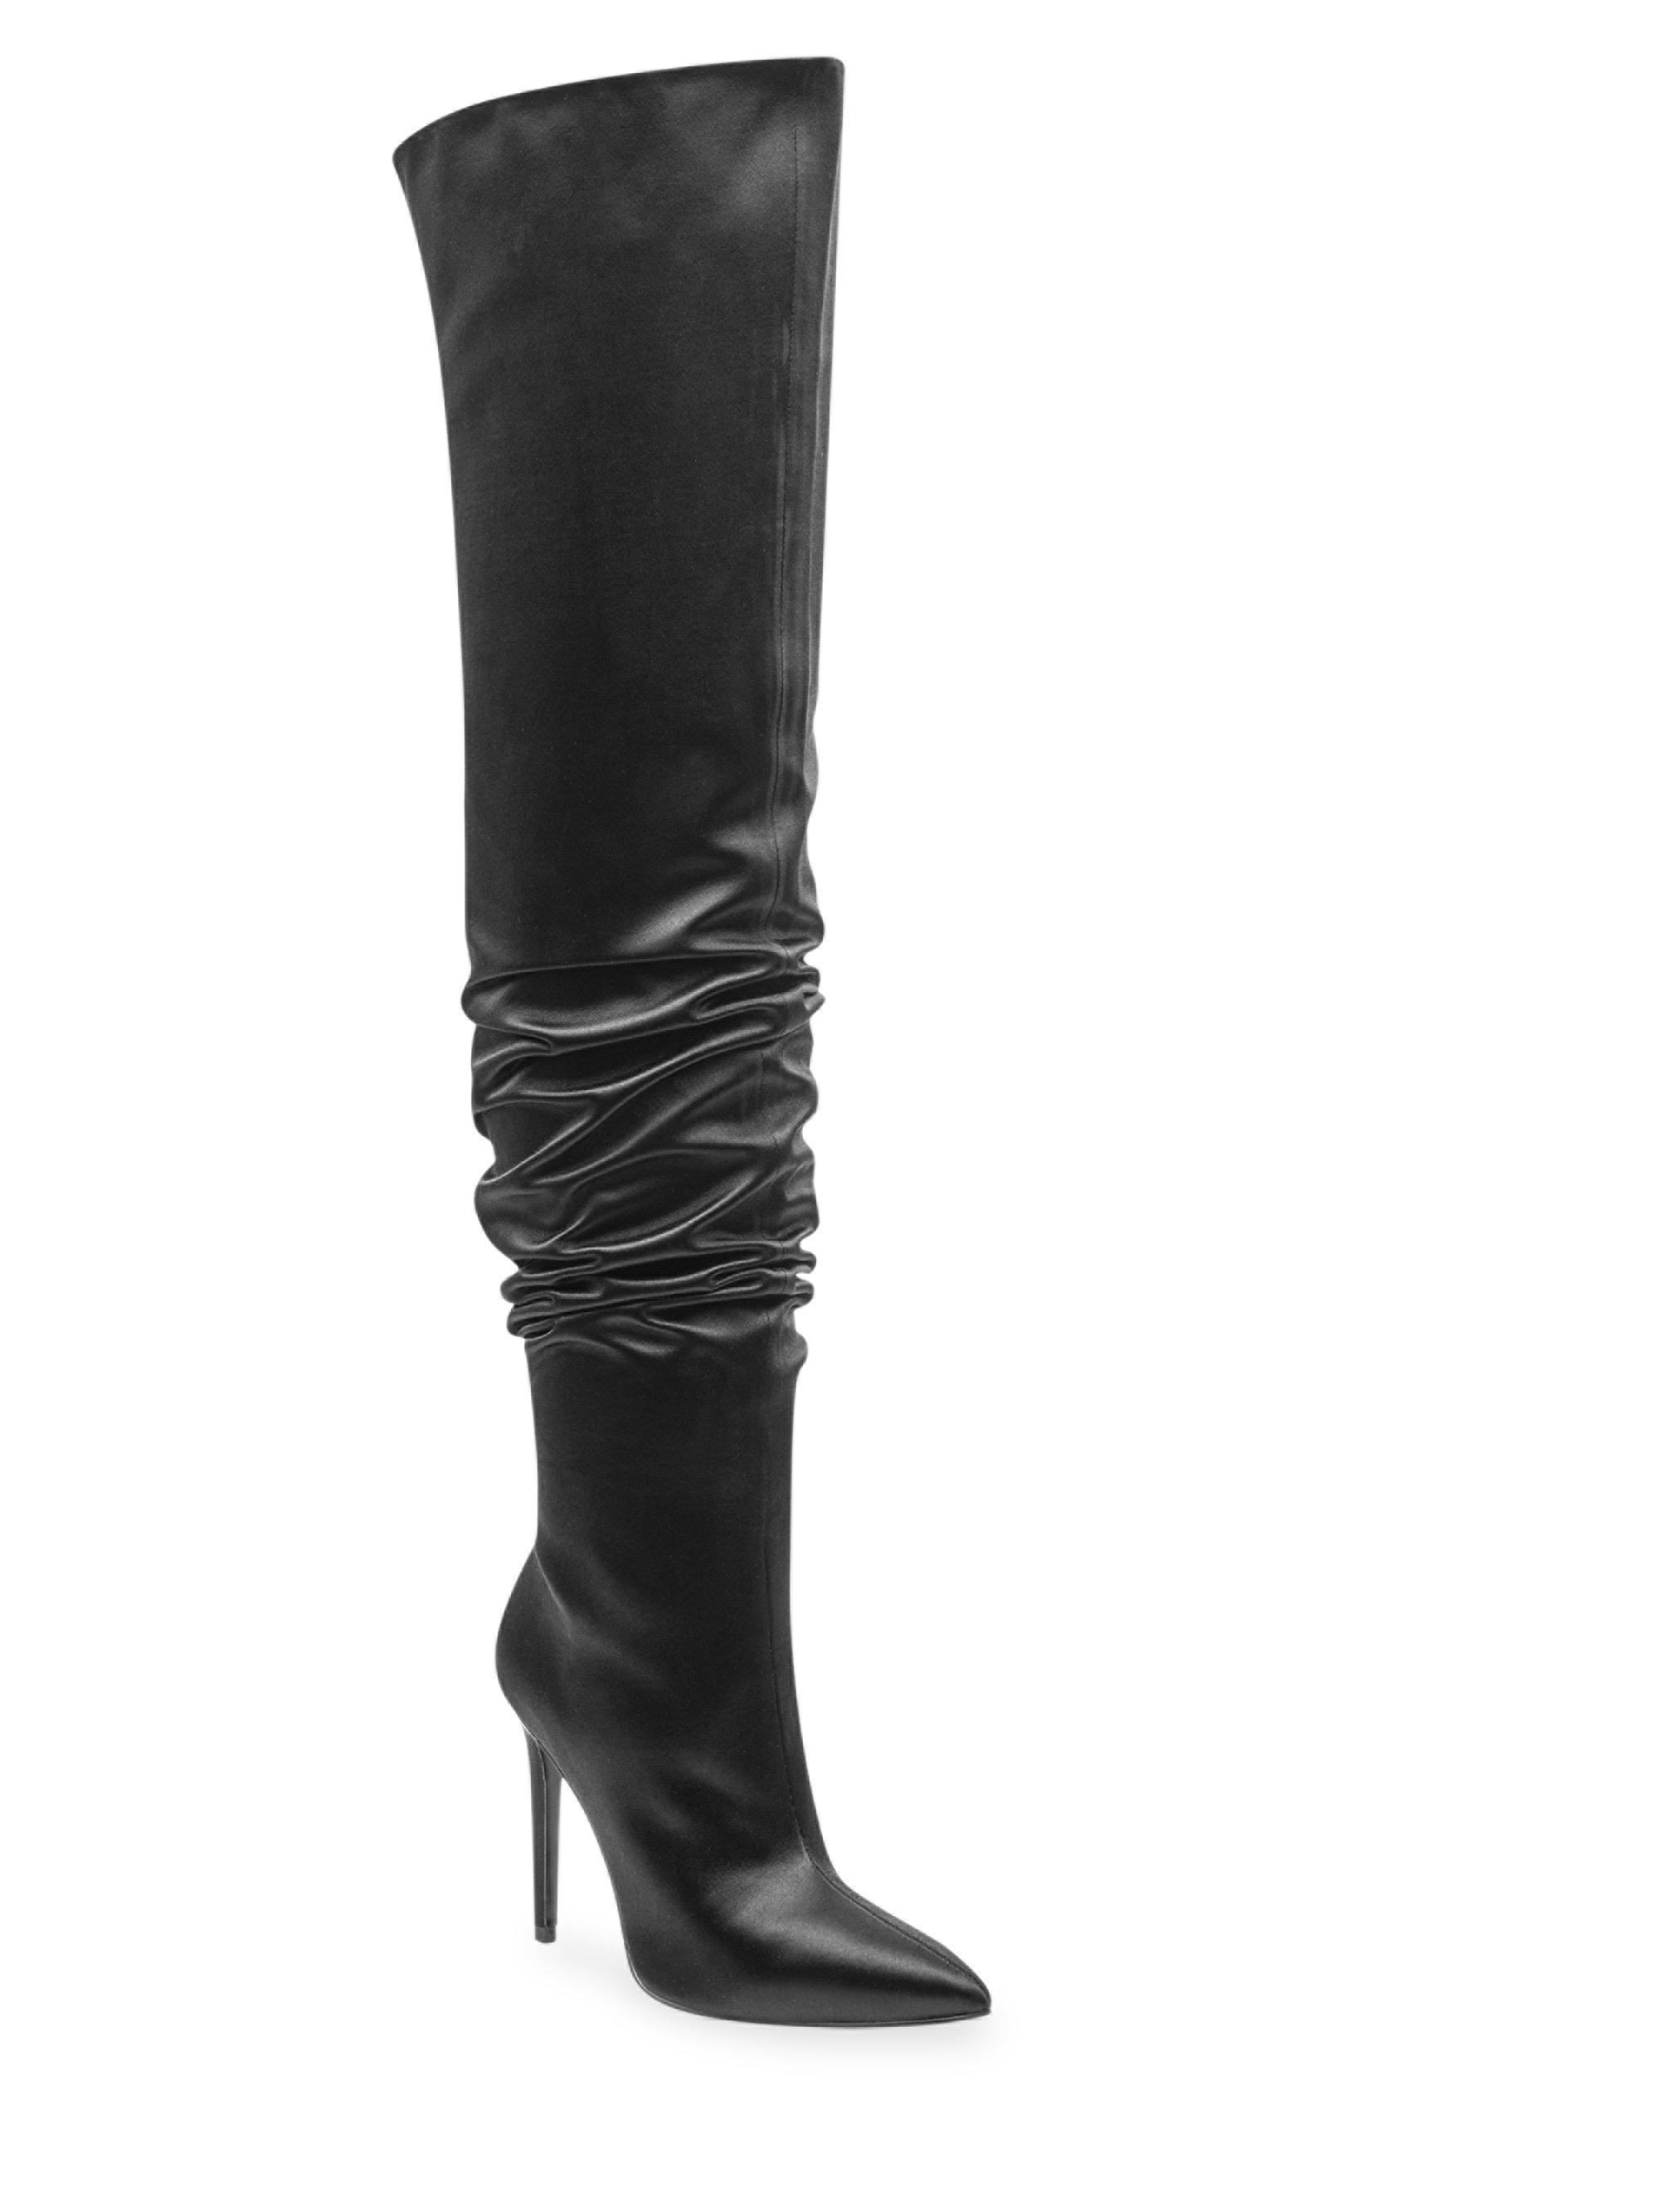 KENDALL + KYLIE Alexx2 Over-The-Knee Boots